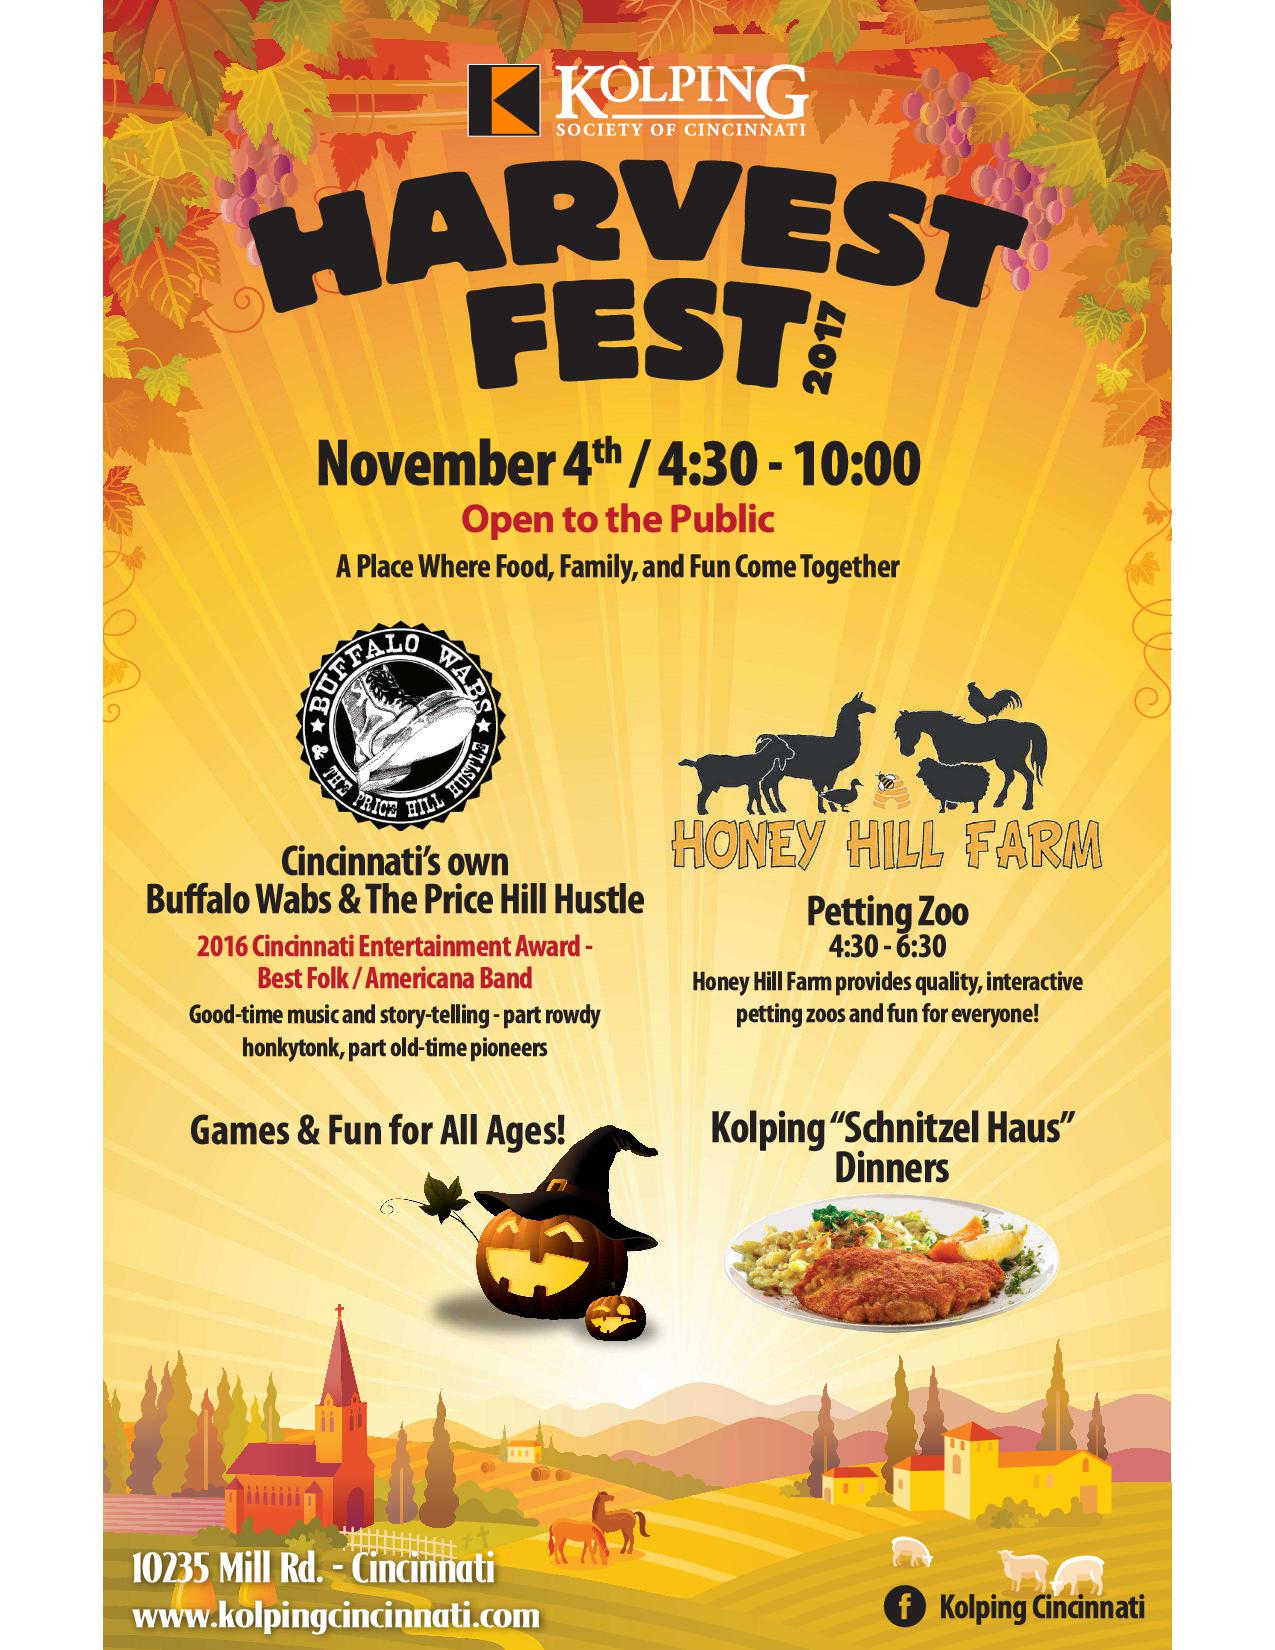 2017 Kolping Harvestfest